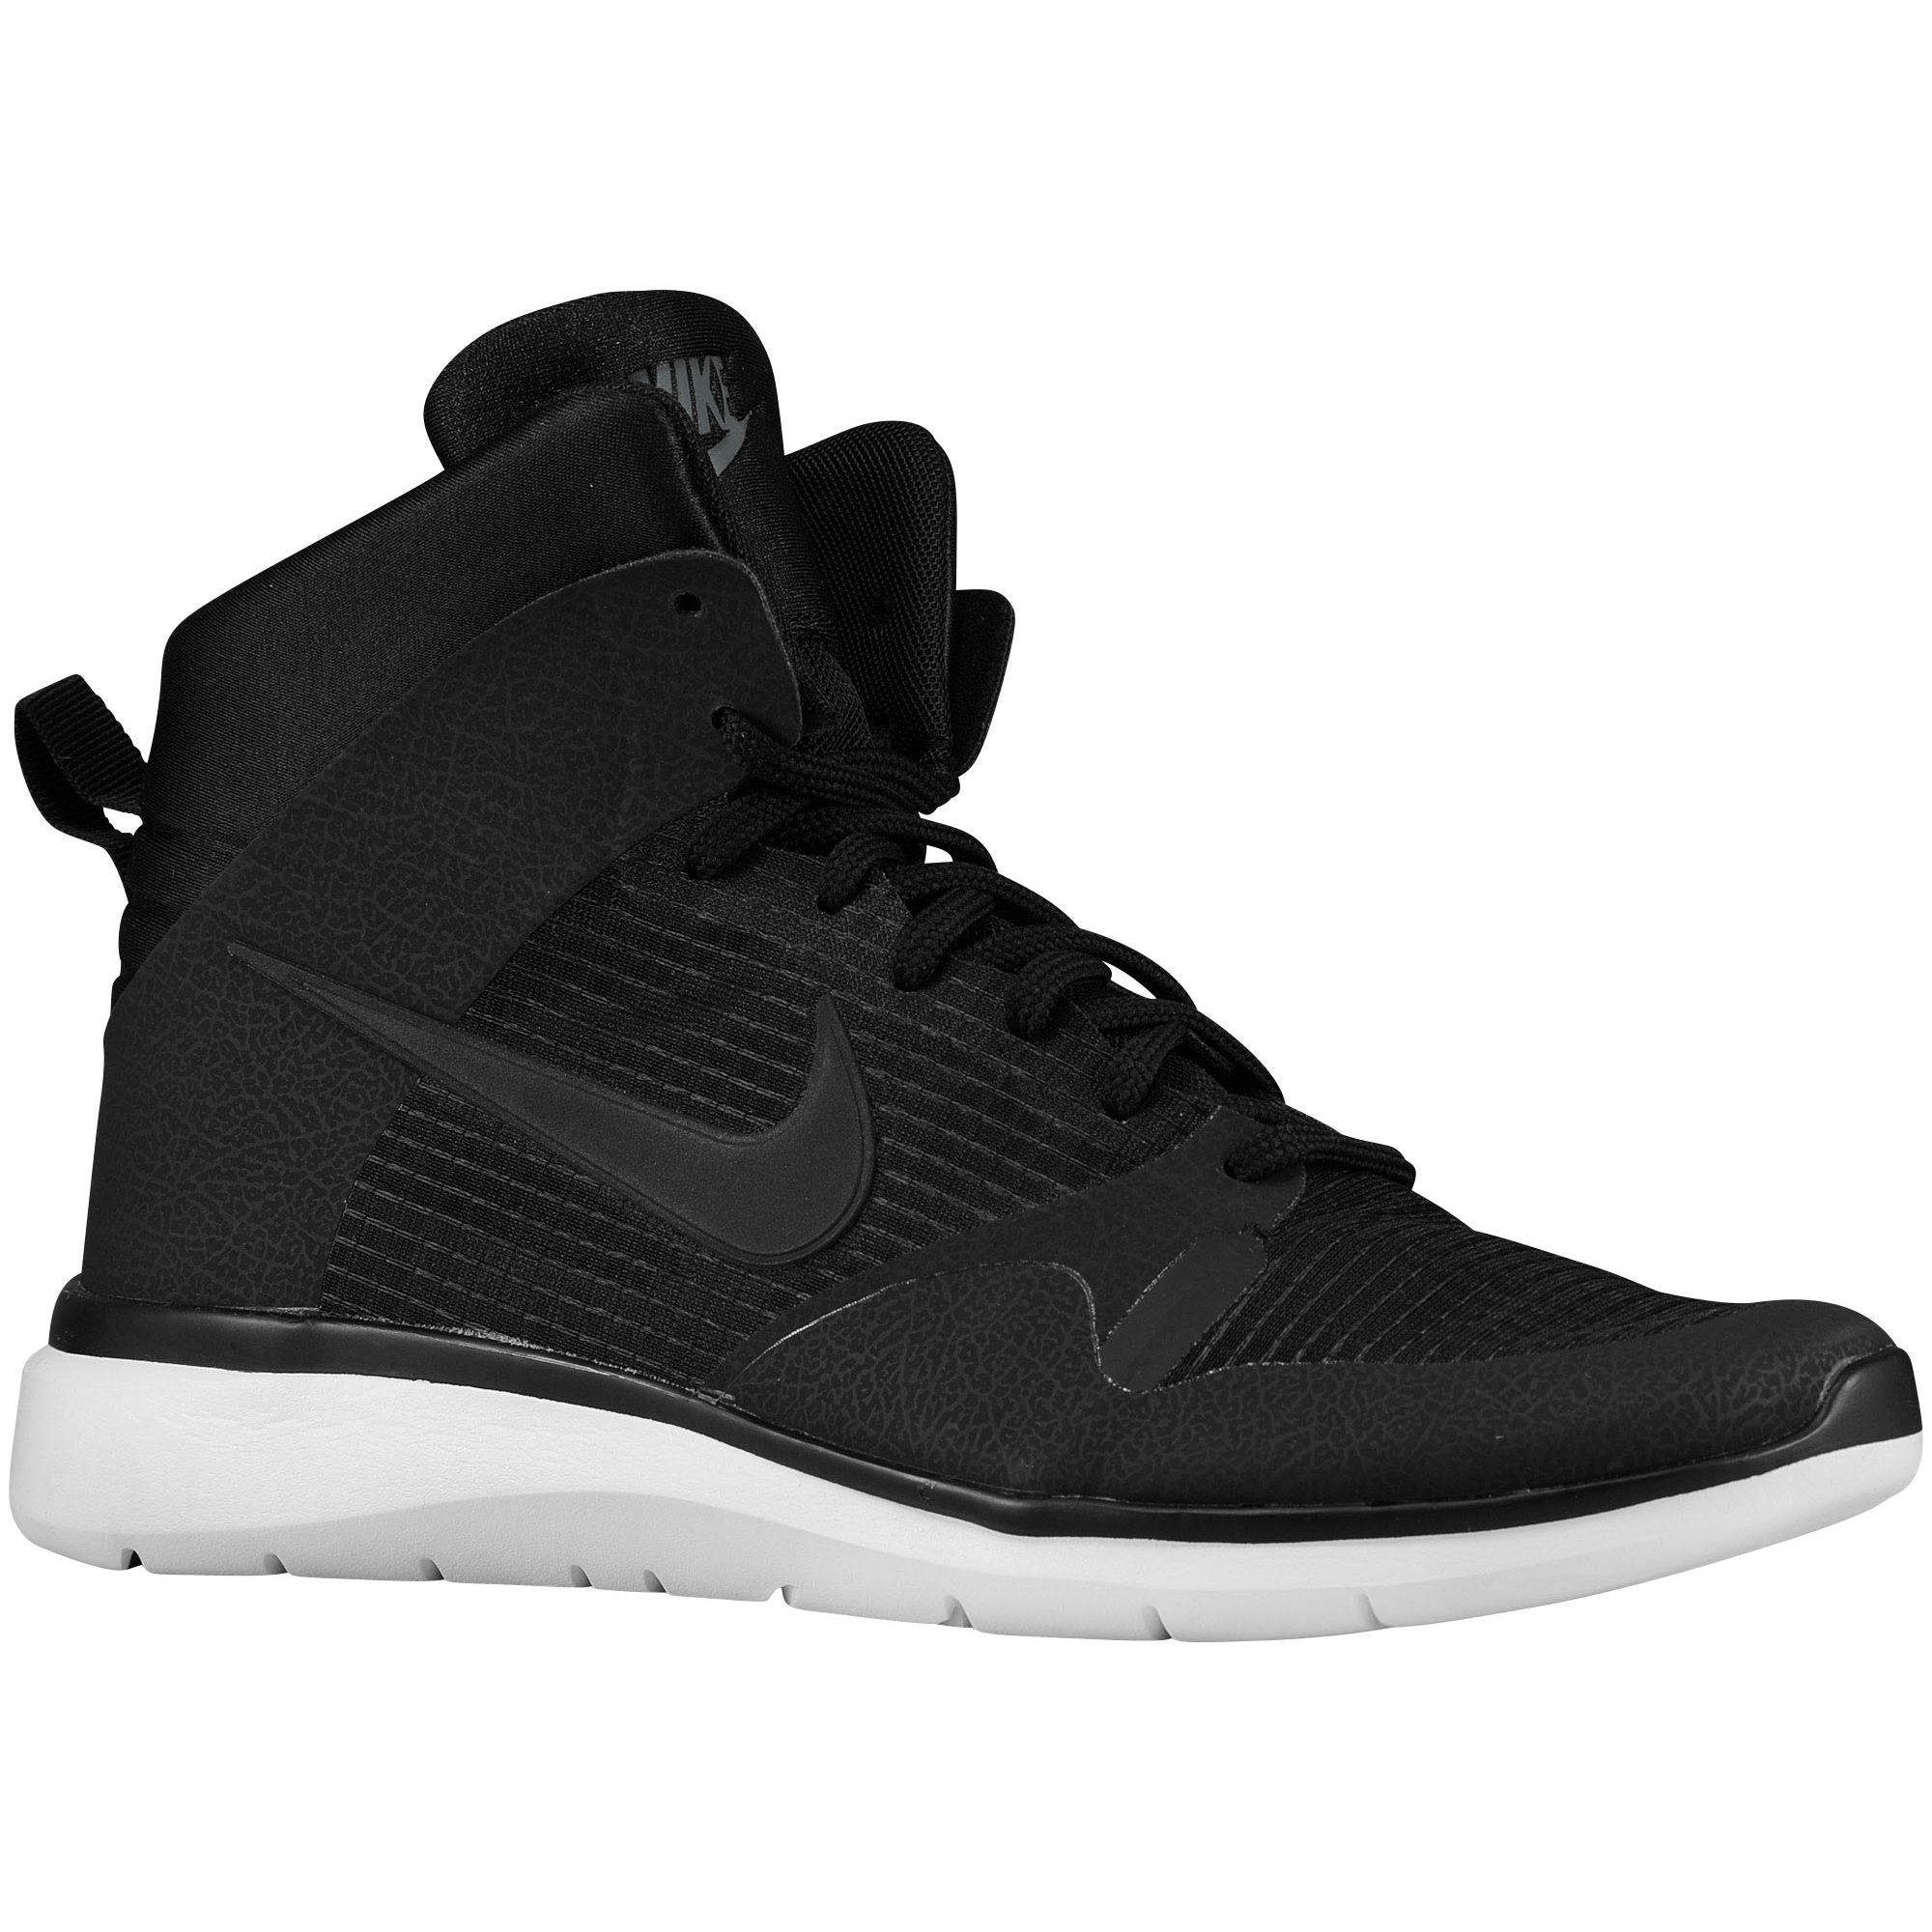 Nike Dunk Ultra Modern - Women's - Basketball - Shoes - Black/Dark Grey/